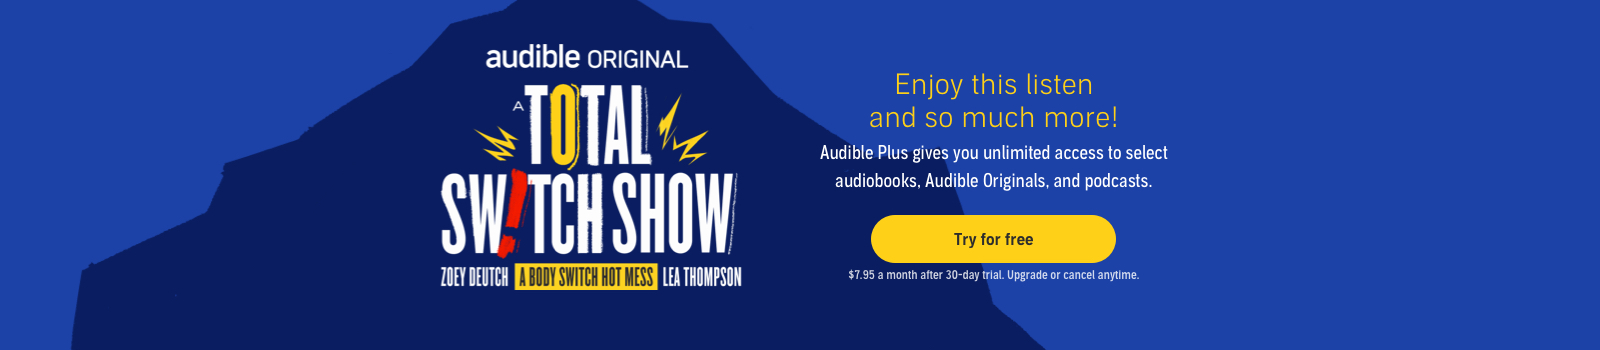 Listen to A Total Switch Show absolutely free | No trial or credit card information necessary